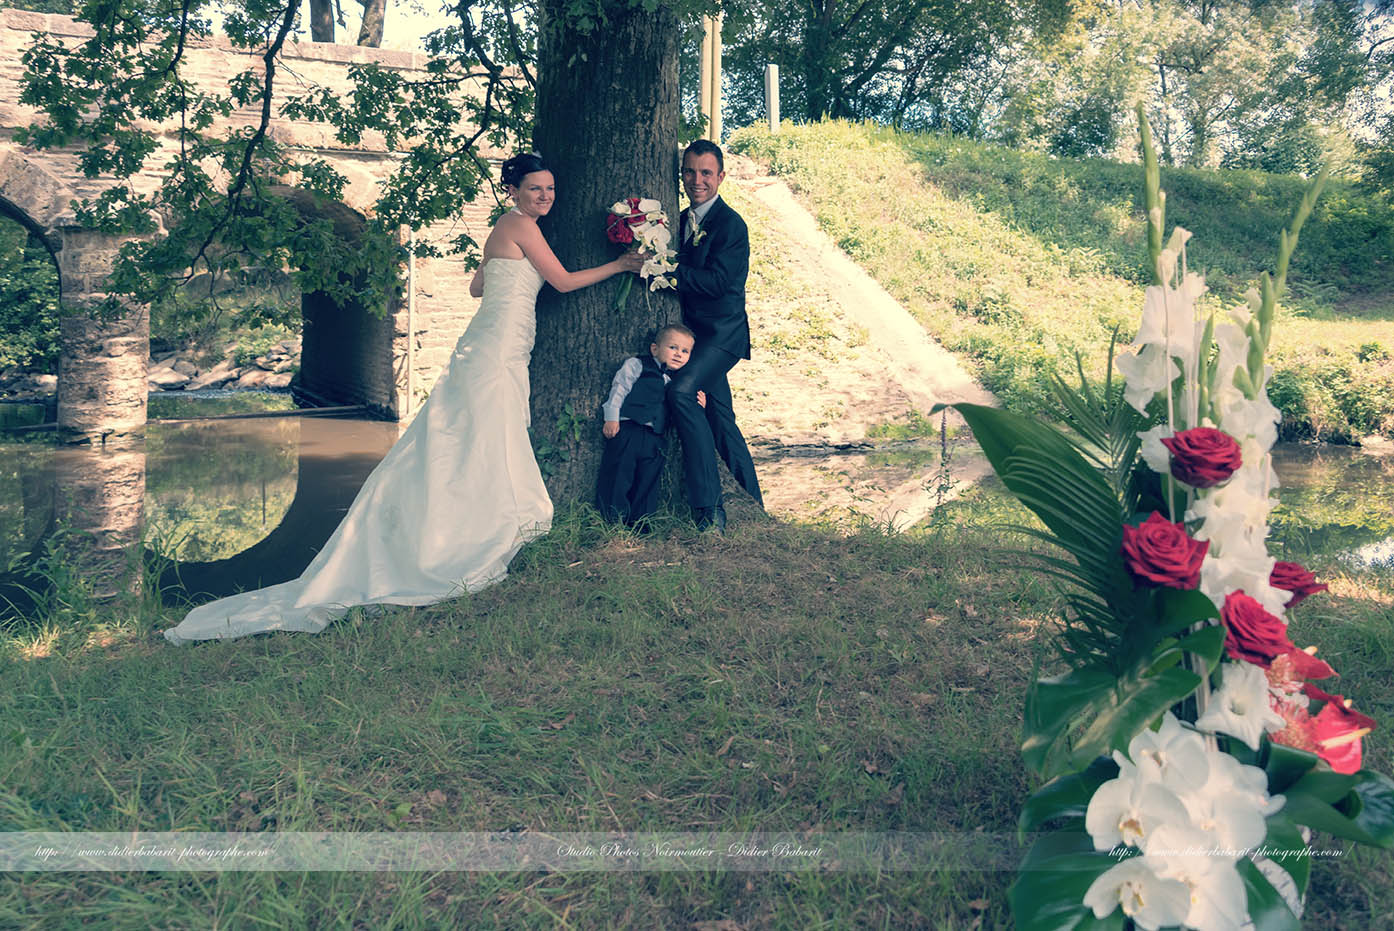 Mariage Tennessy Kevin 01 aout 2015 (508)1